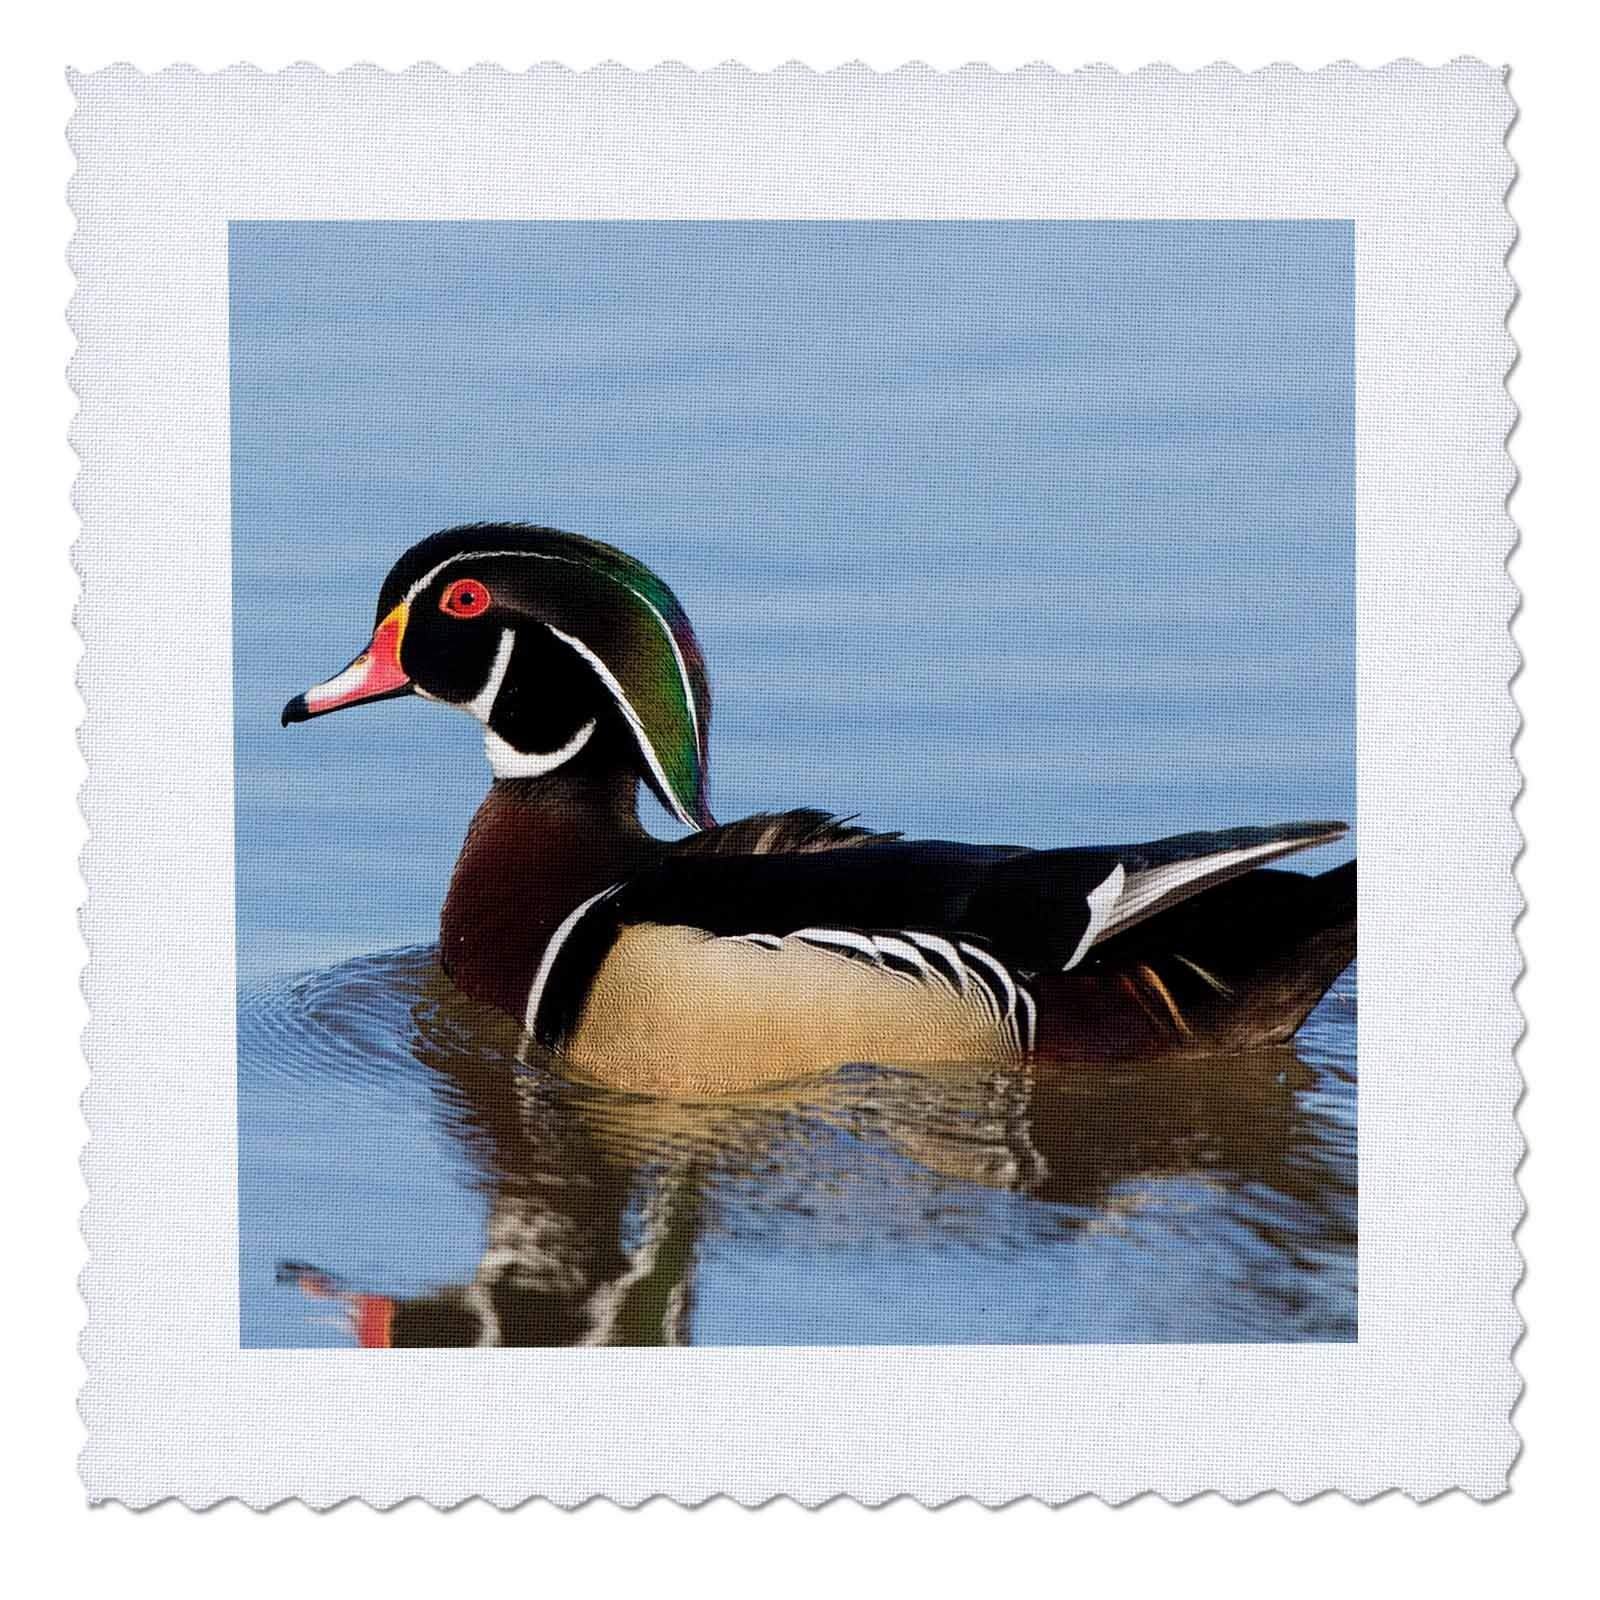 3dRose Danita Delimont - Ducks - Wood Duck male in wetland, Marion County, Illinois - 18x18 inch quilt square (qs_259324_7)